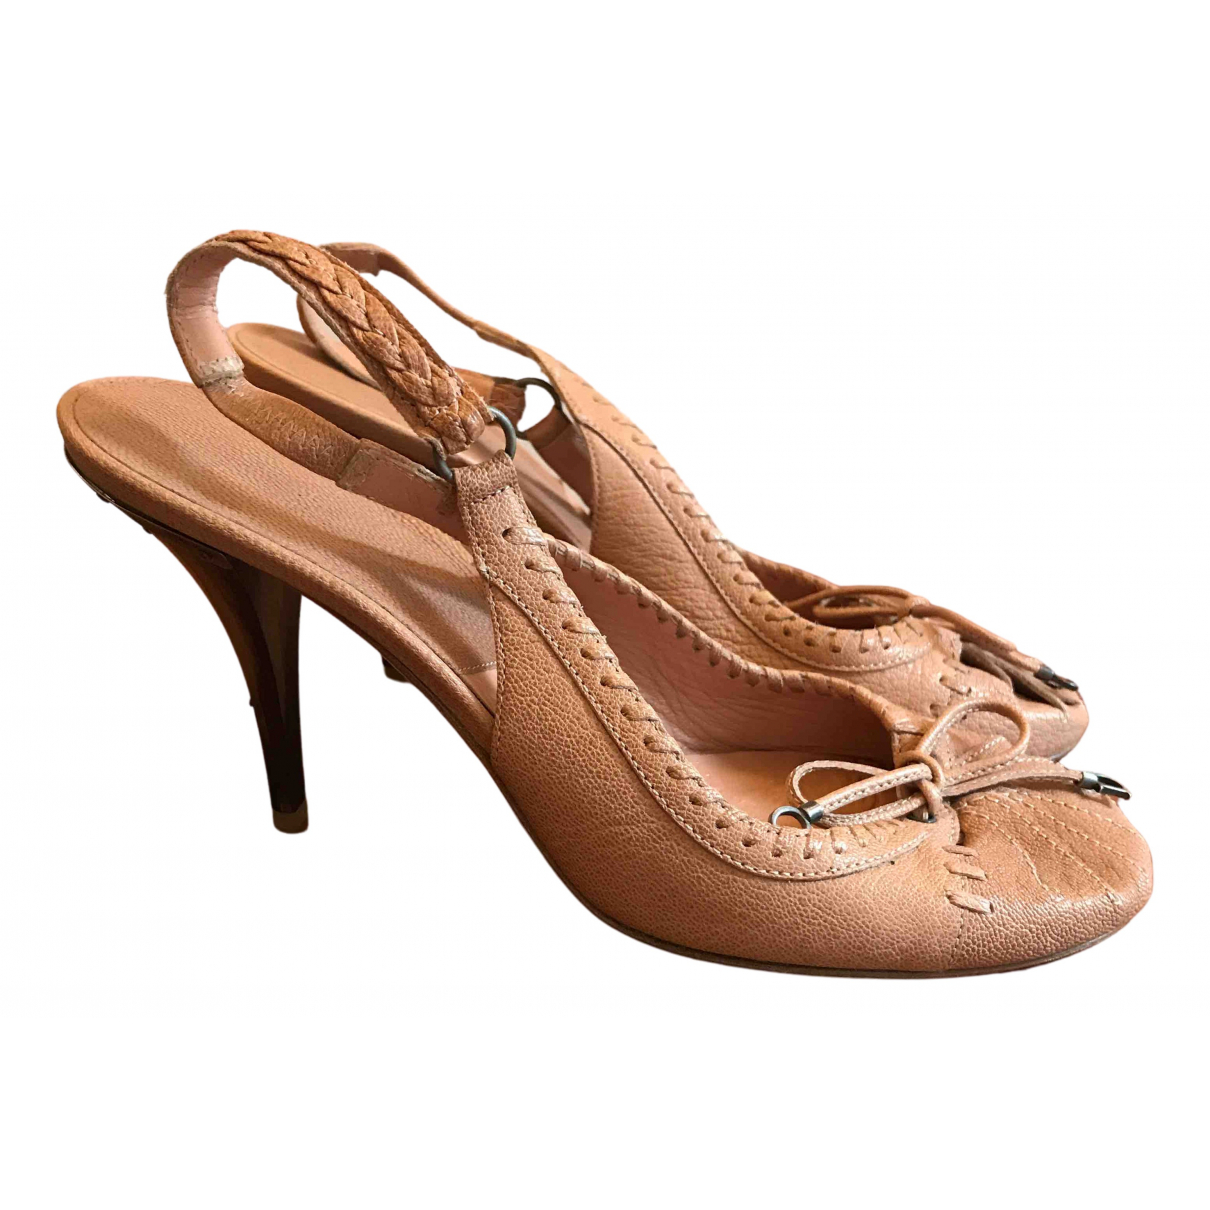 Dior N Pink Leather Heels for Women 38 EU